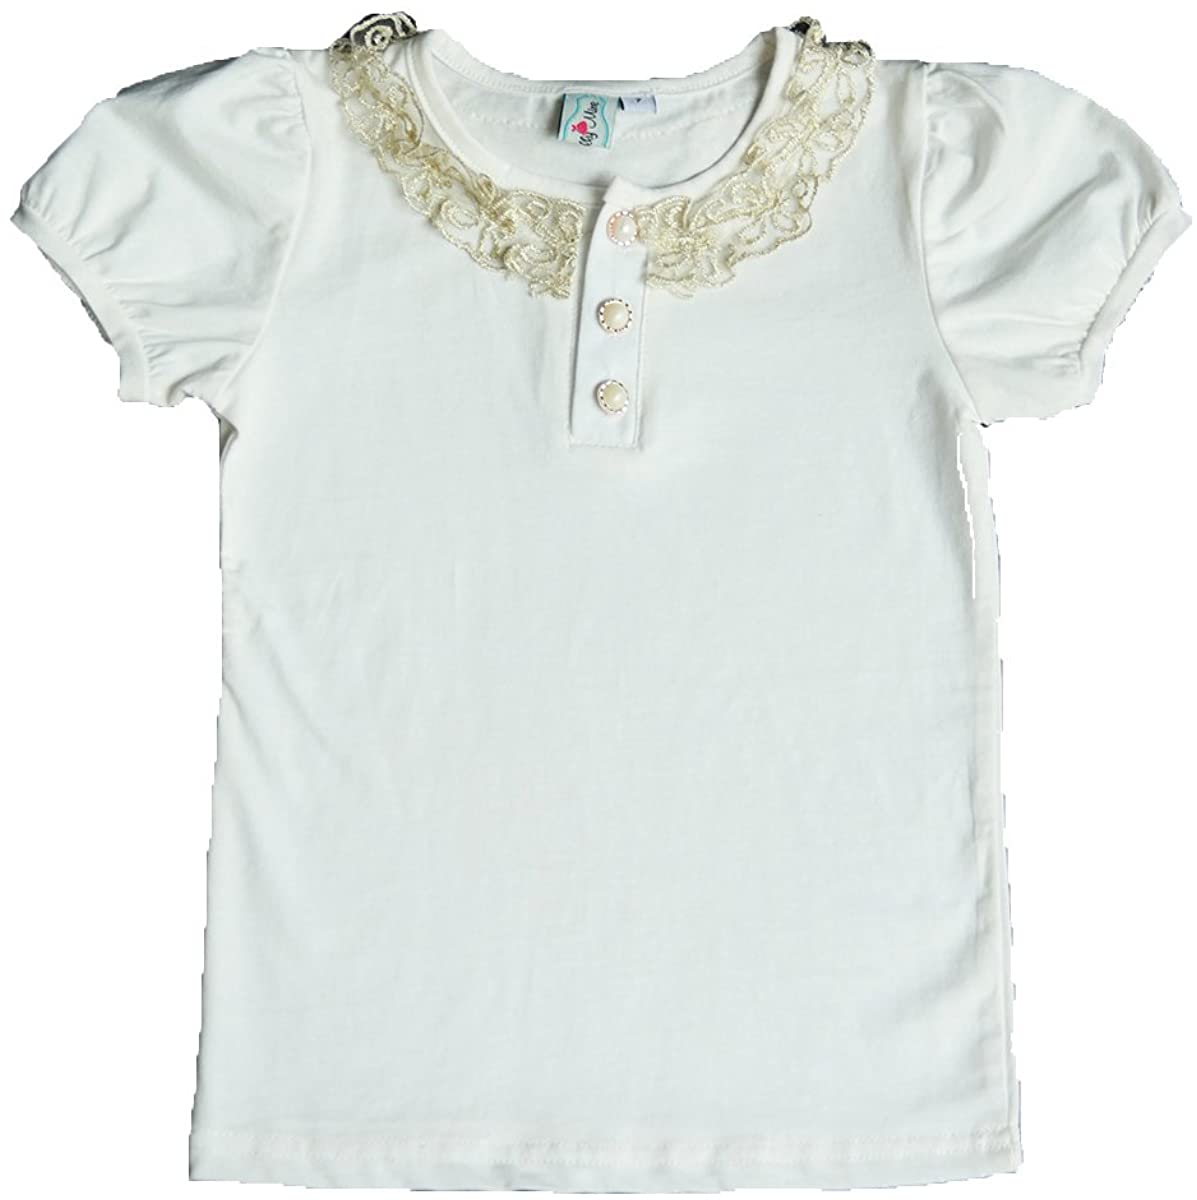 CHOCOKIDS Girls Polo Shirt with Gold Collar Embroidery ; White/Navy Blue BSR0121